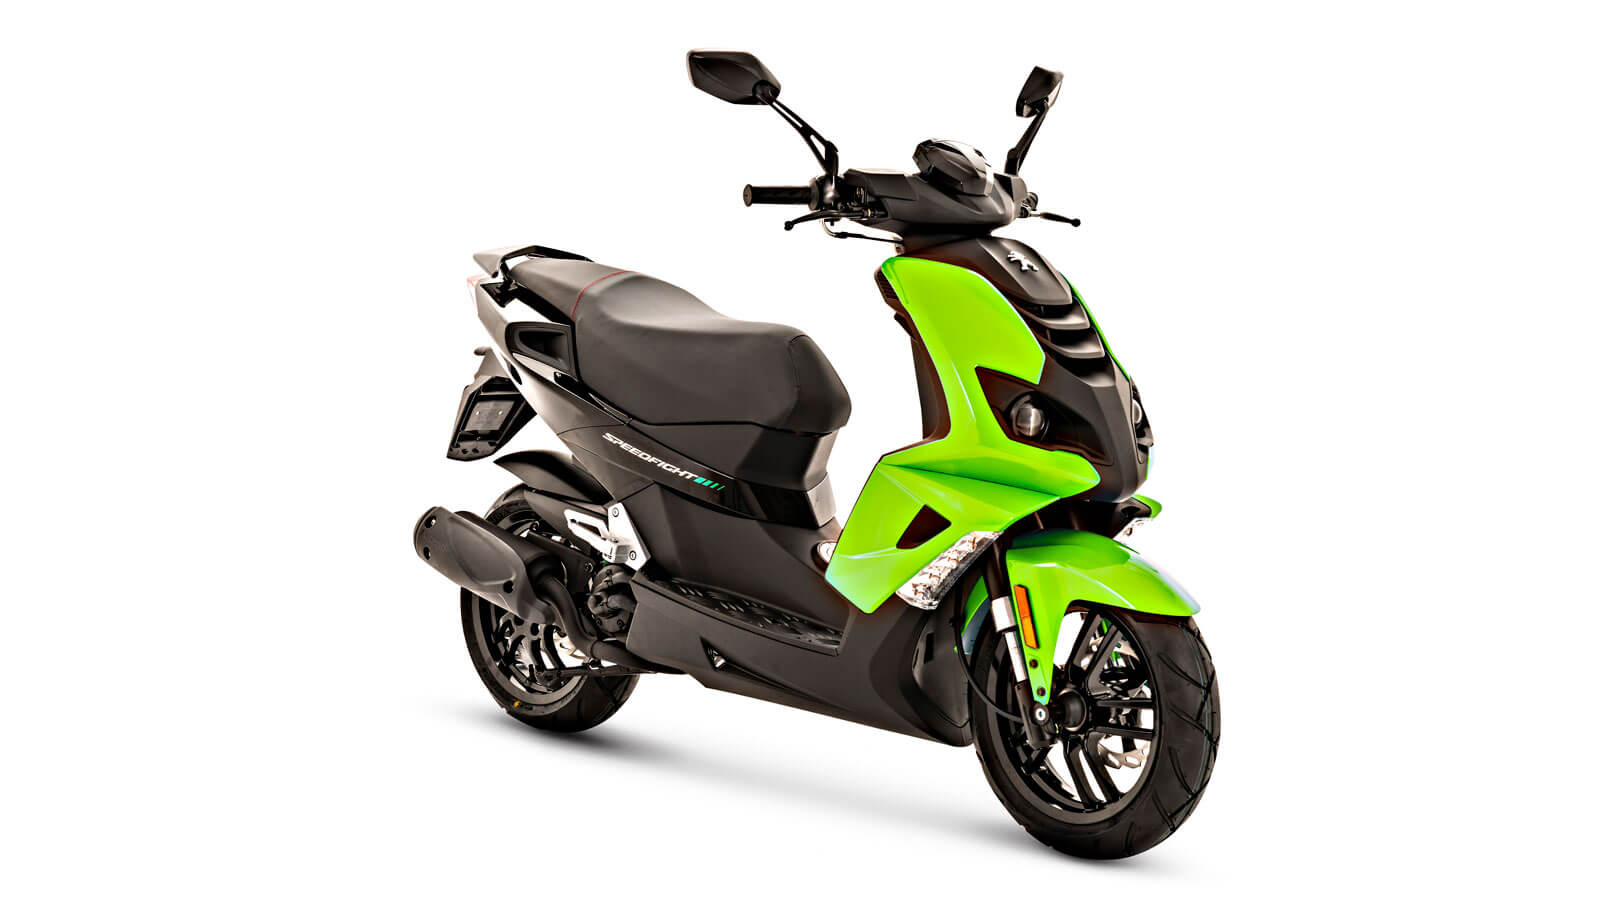 scooters for sale in portsmouth - andy sills motorcycles